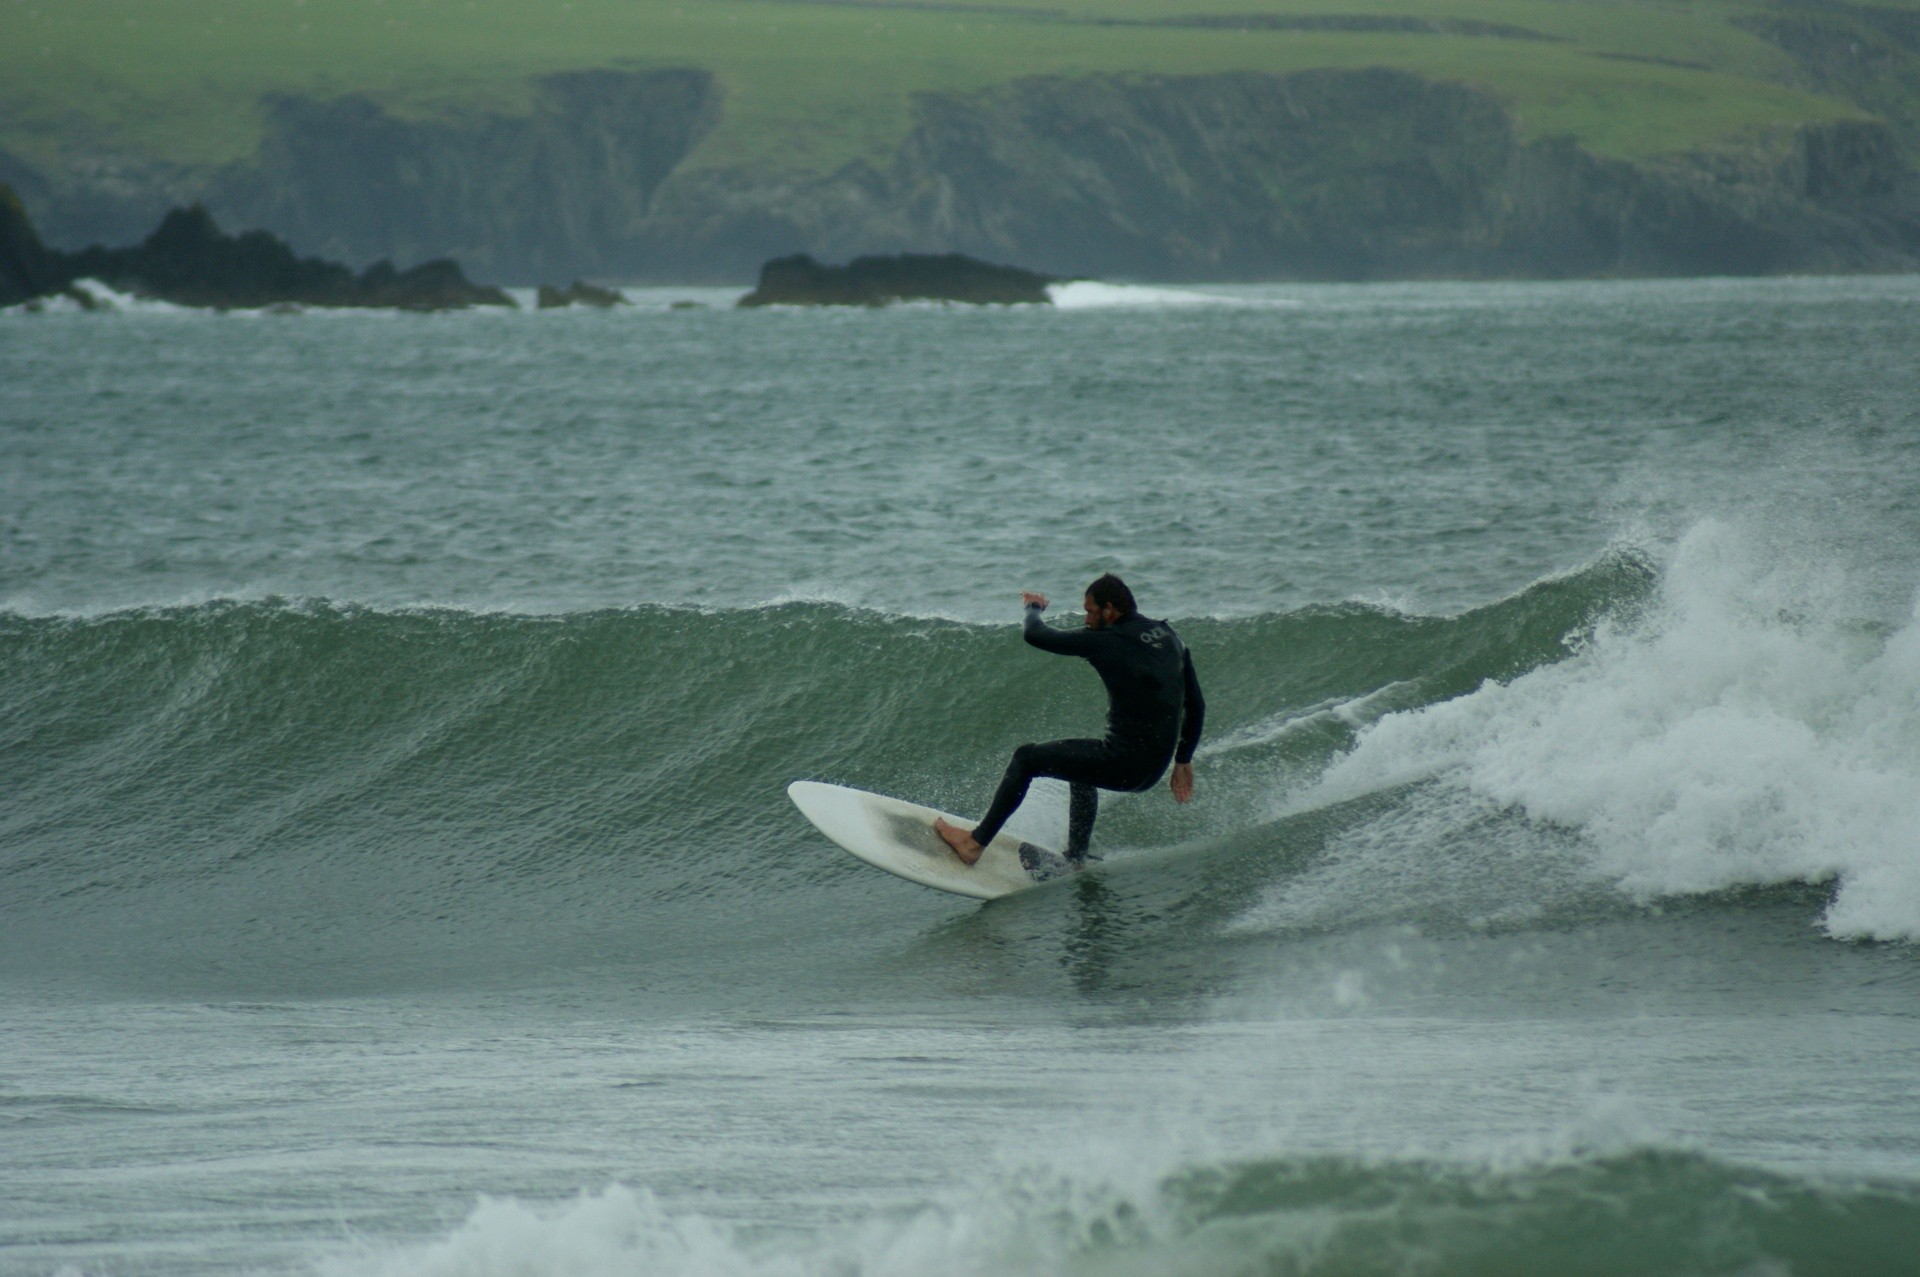 severnsurfer's photo of Whitesands Bay